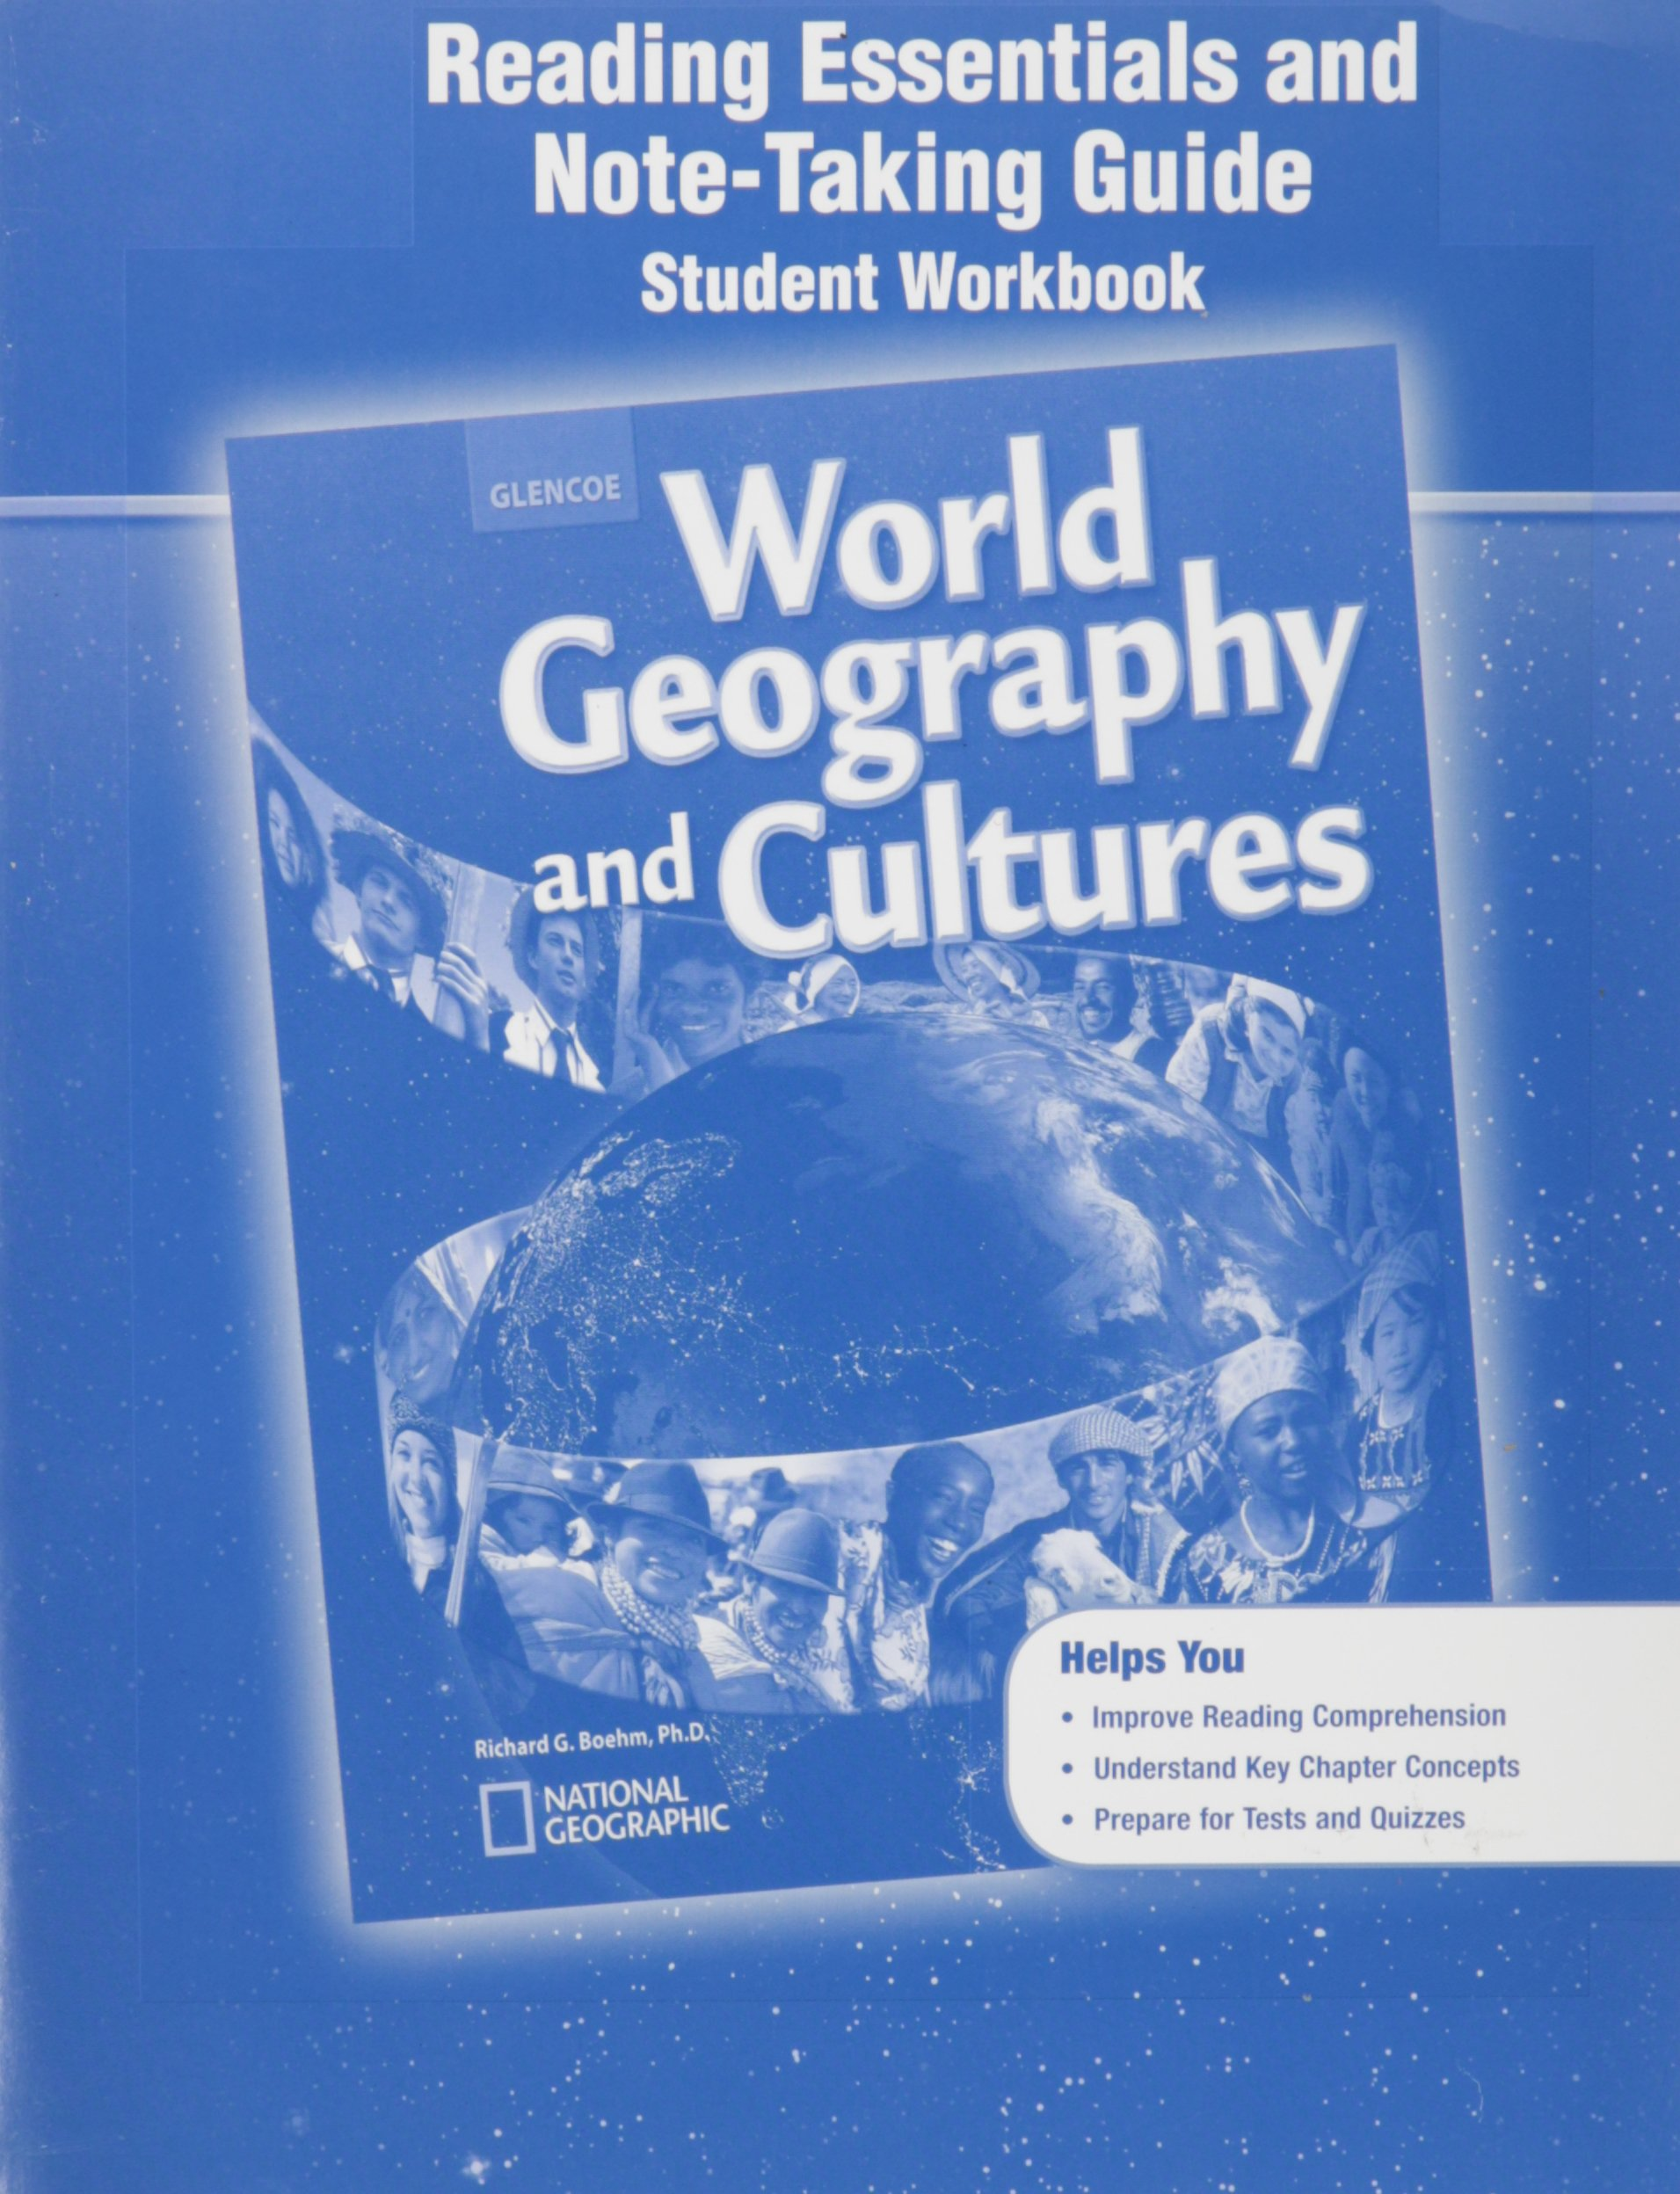 World Geography and Cultures, Reading Essentials and Note-Taking Guide,  Student Workbook (GLENCOE WORLD GEOGRAPHY): 9780078954993: Amazon.com: Books